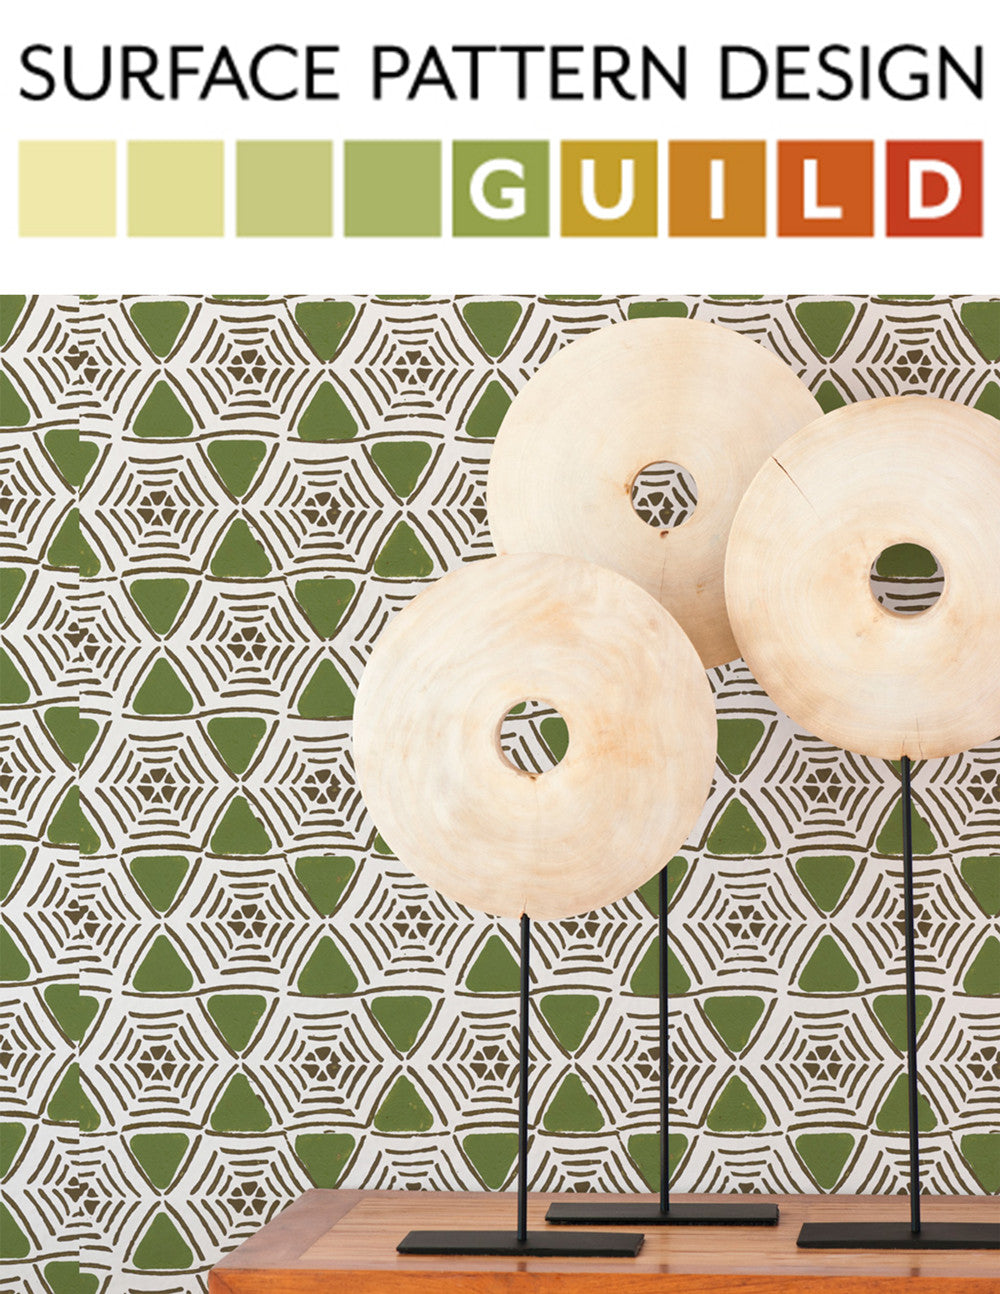 Sarah & Ruby's new modern handprinted wallpaper line featured on Surface Pattern Design Guild